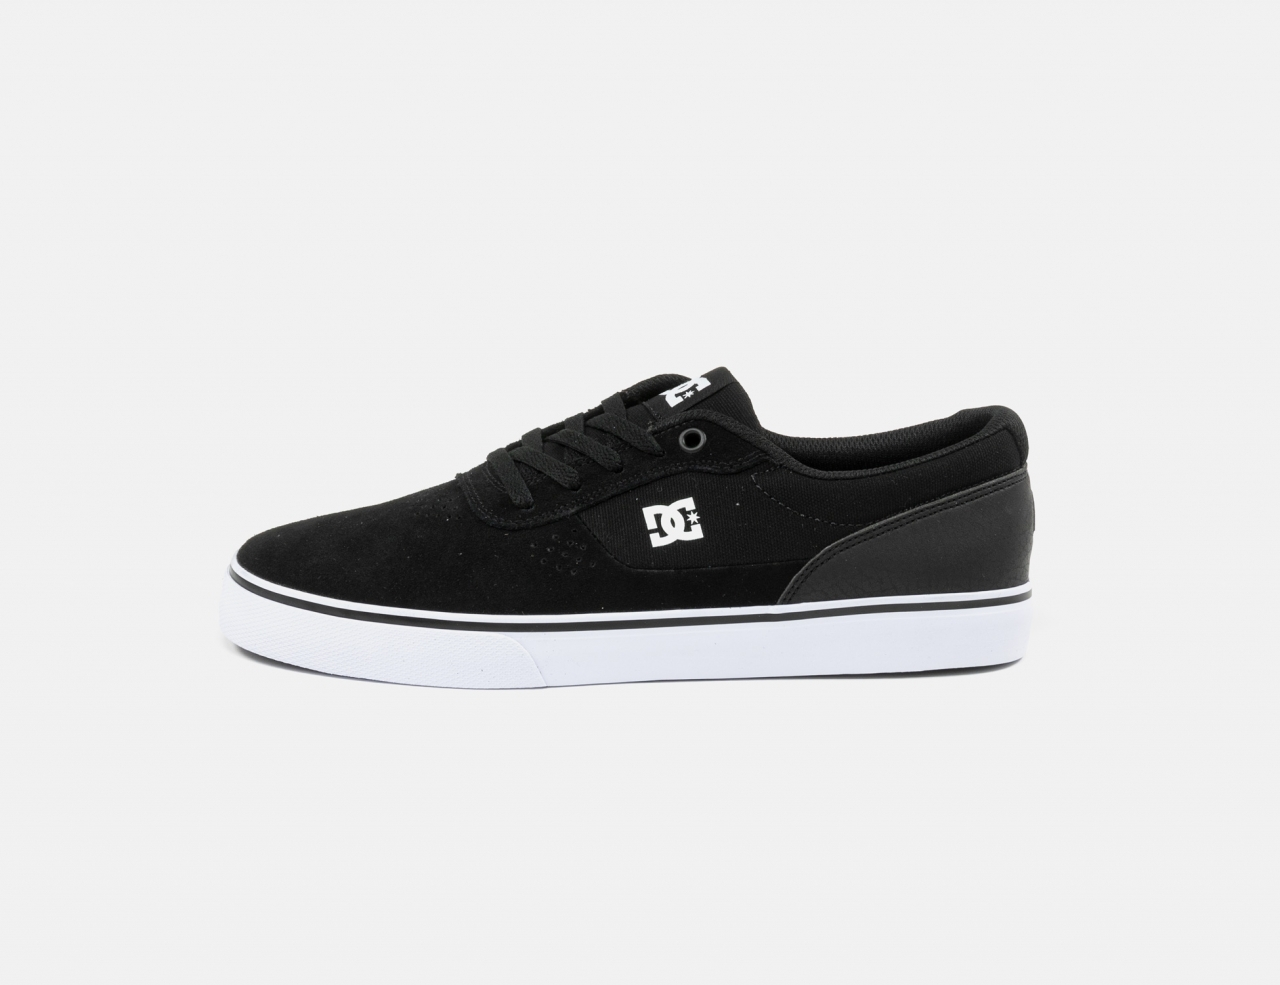 DC Shoes Switch S Sneaker - Black / White